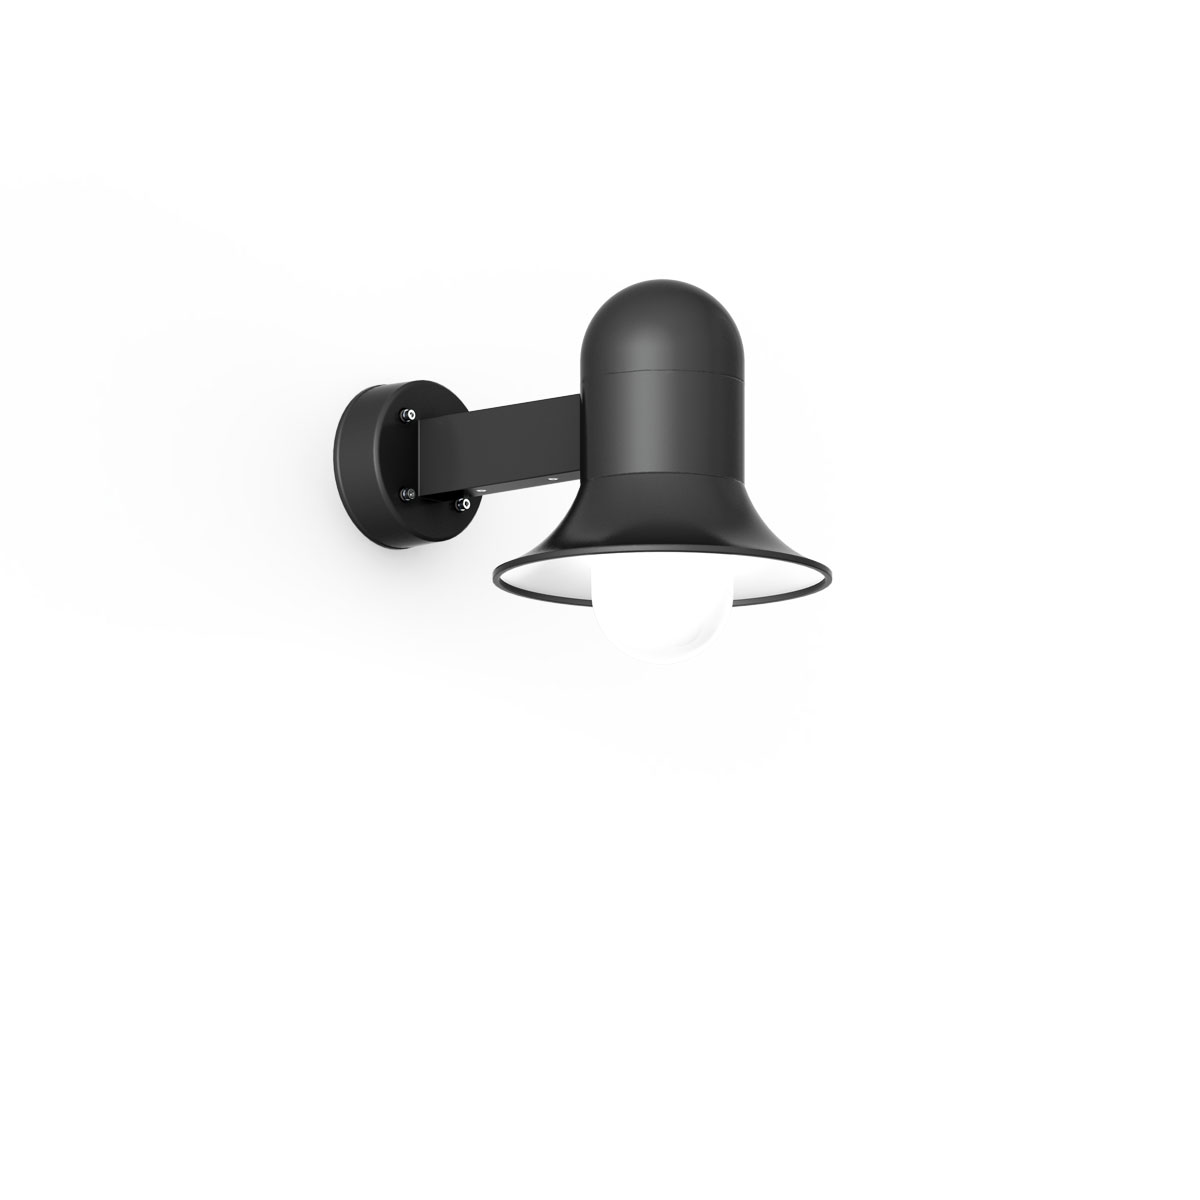 Atlantic small shade wall light 1200x1200